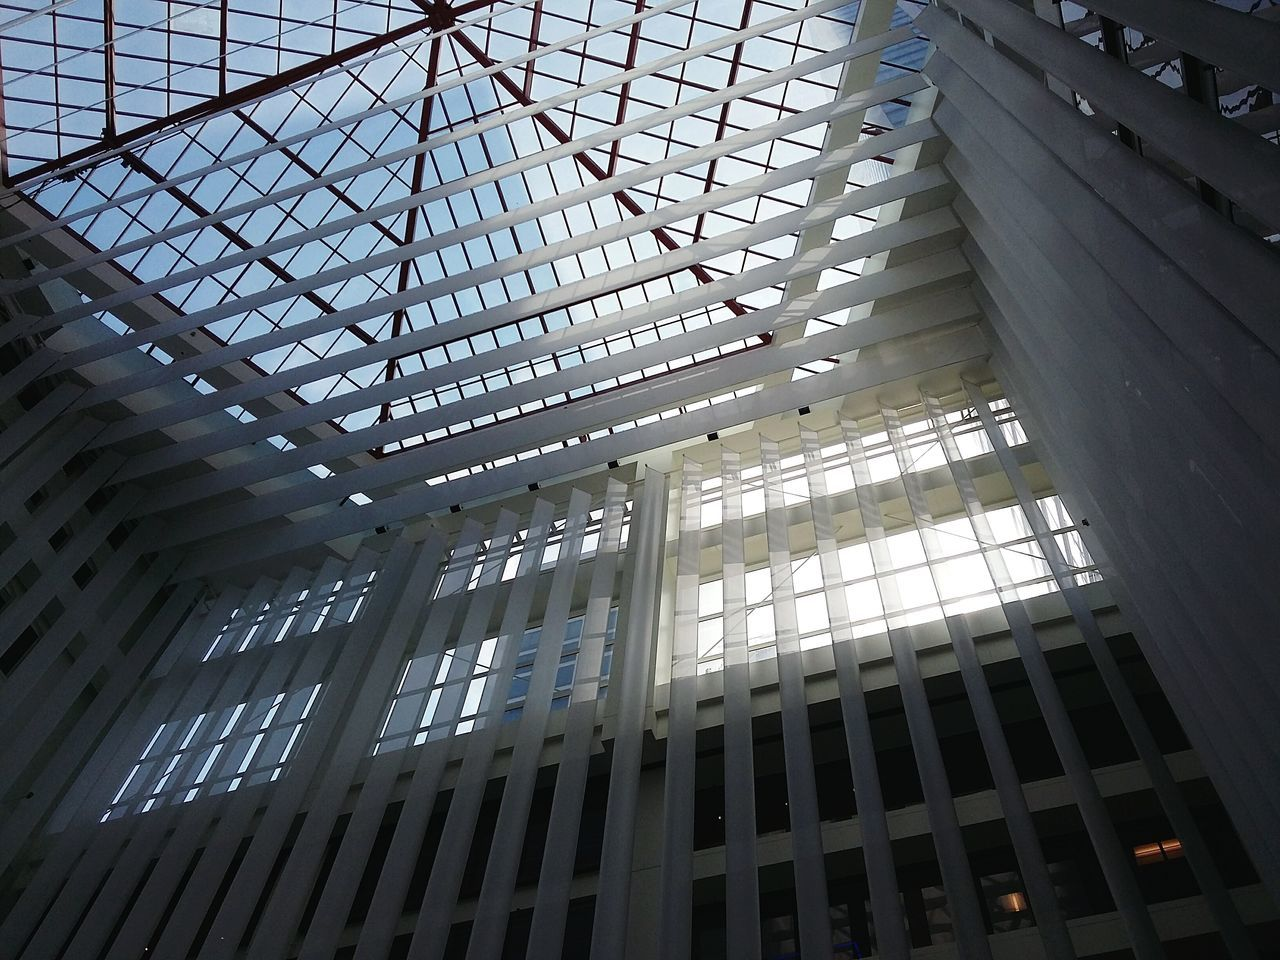 Ceiling Construction at One Market, San Francisco. · SF California CA USA Architecture Interior Interior Design Roof Ceiling Glass And Metal Light Light And Shadow Geometry Modern